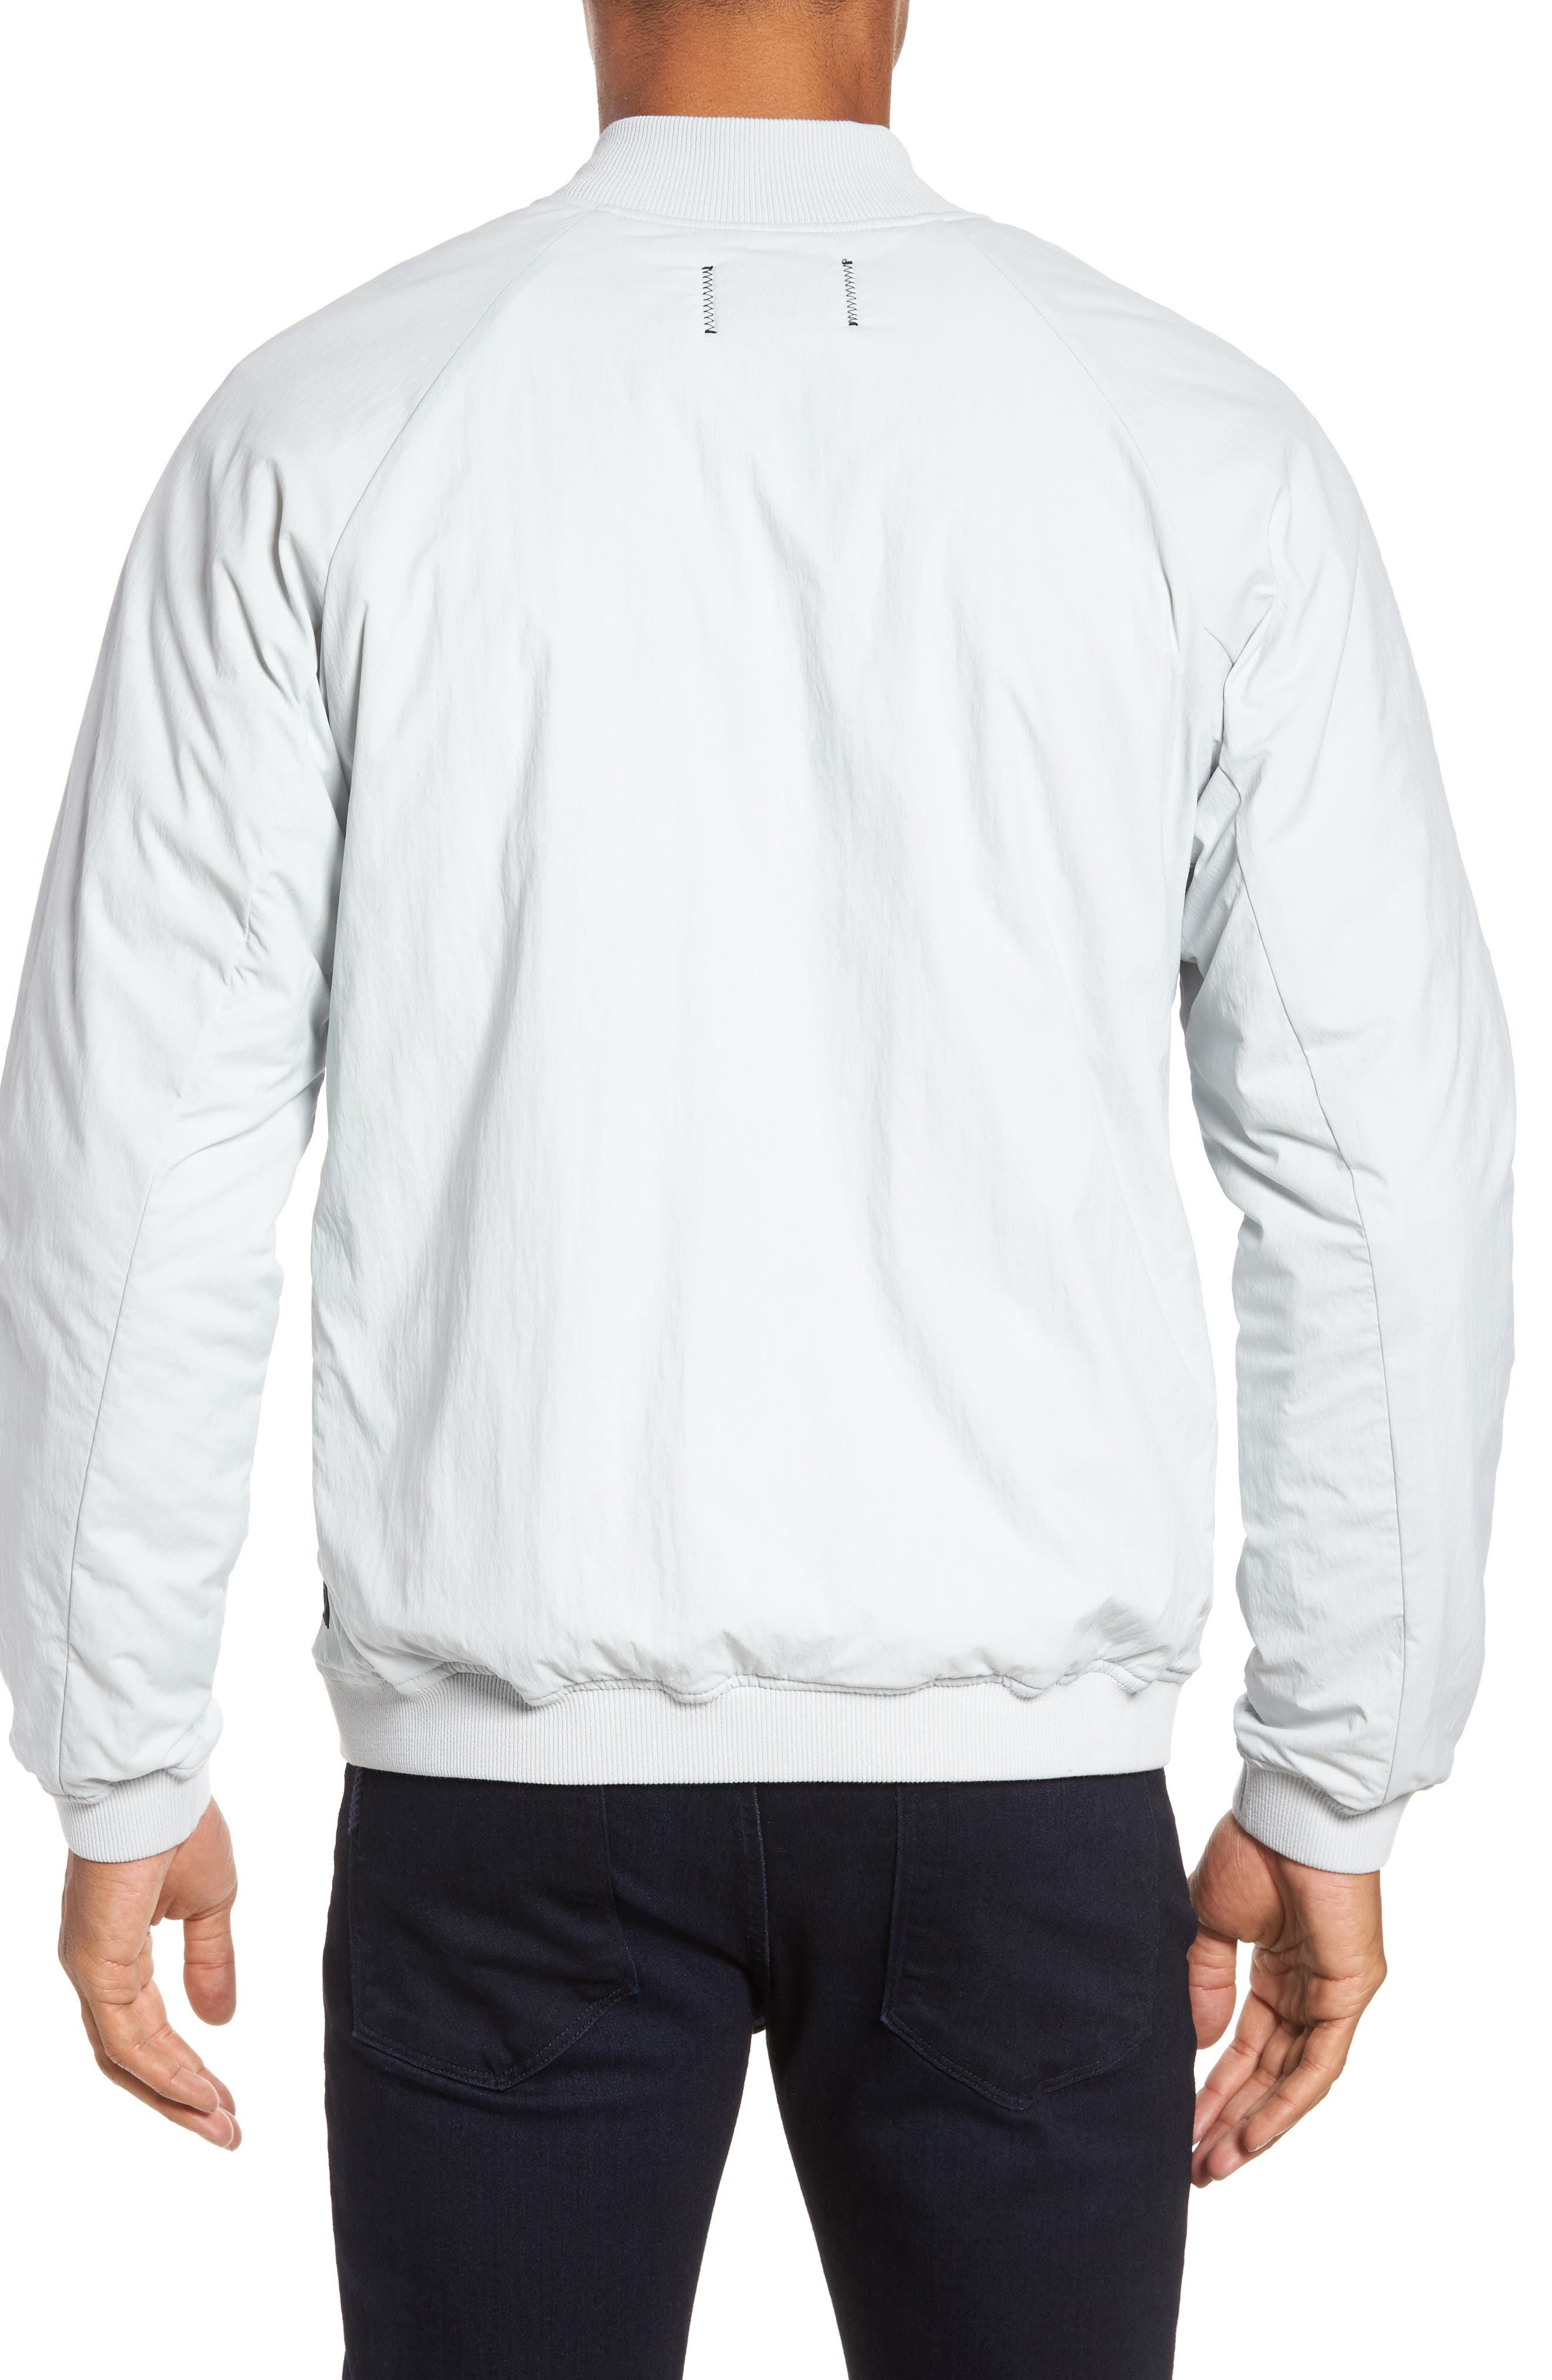 Insulated Bomber Jacket,                             Alternate thumbnail 2, color,                             053